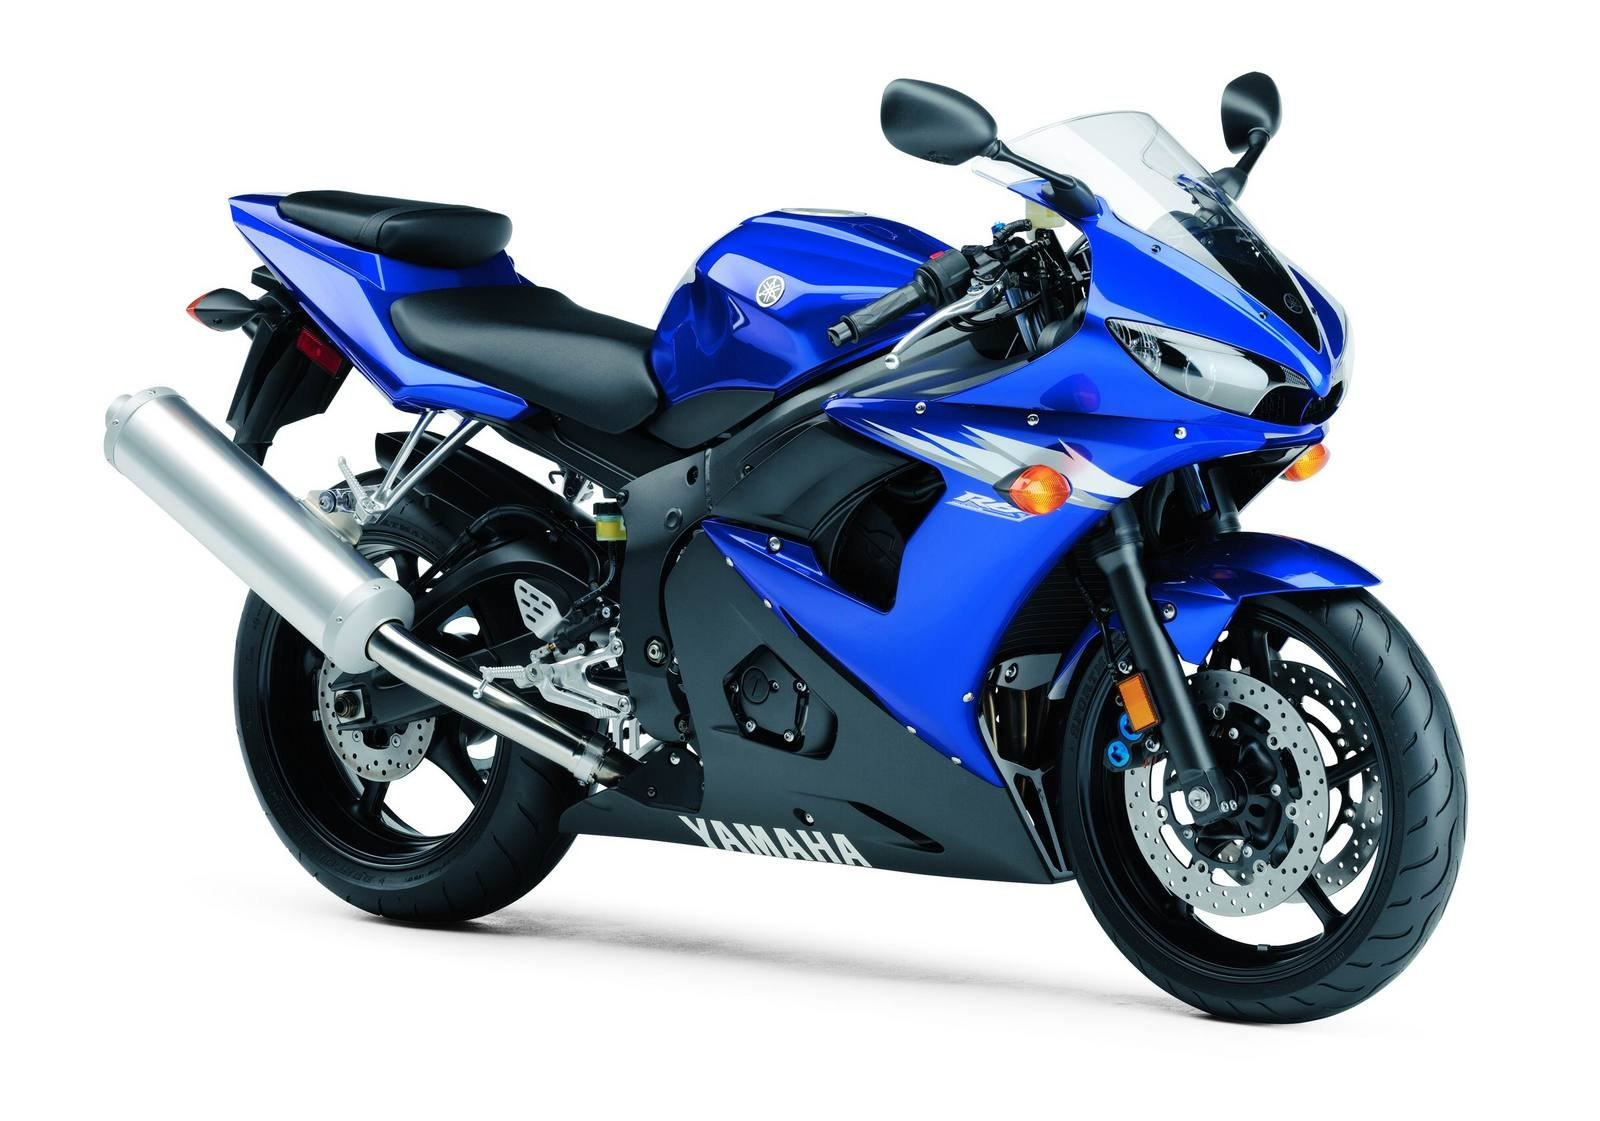 2006 yamaha yzf r6s picture 45964 motorcycle review for 2006 yamaha yzf r6